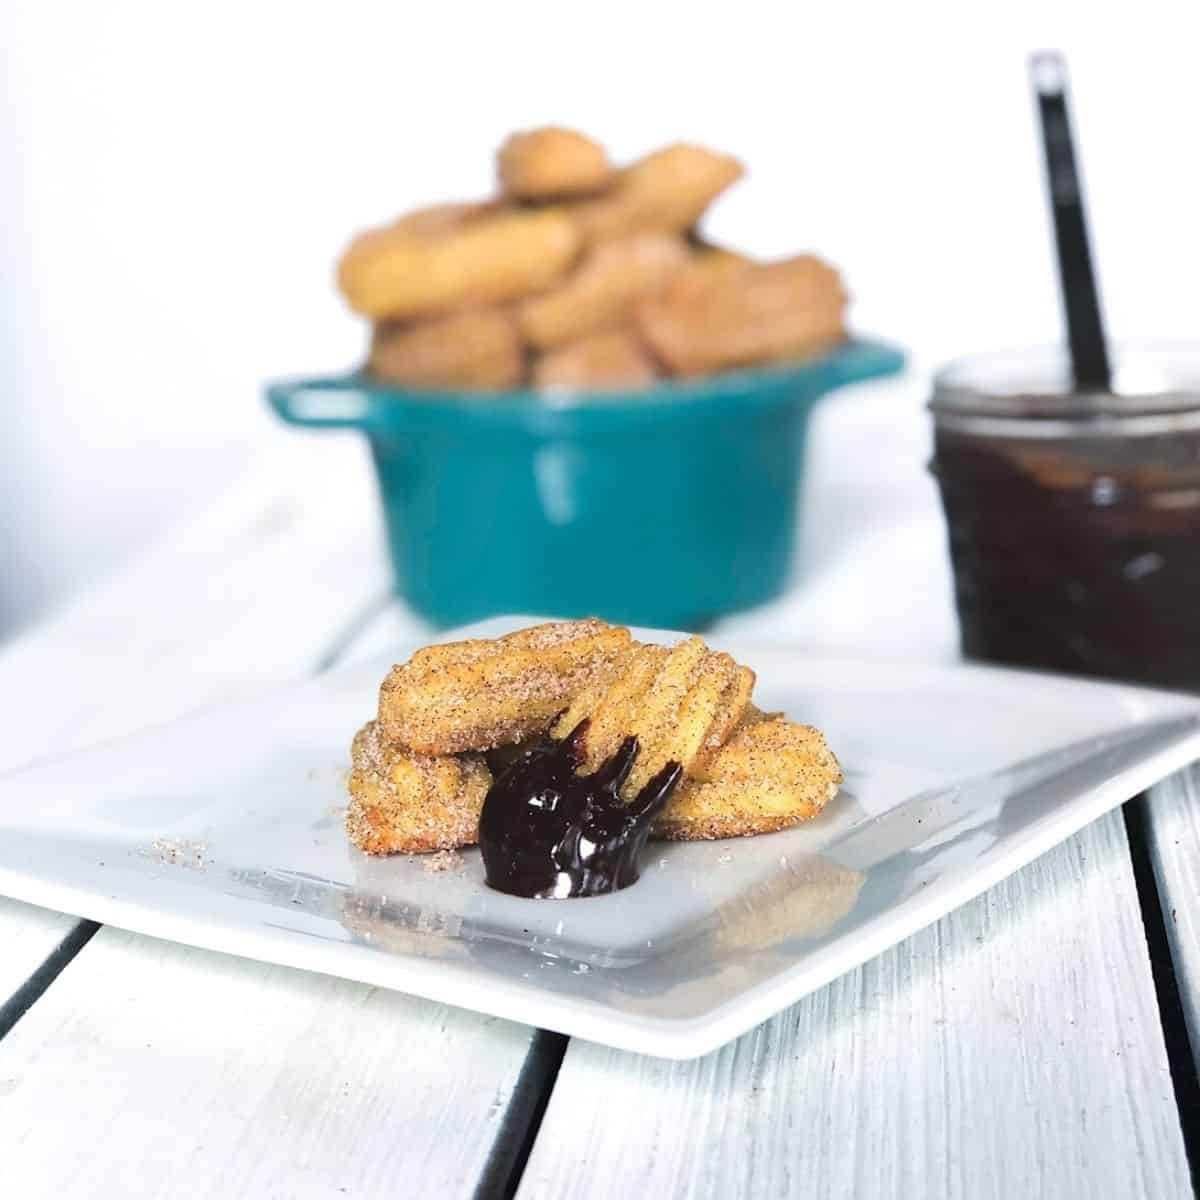 mini churro bites baked covered in chocolate sauce on a plate